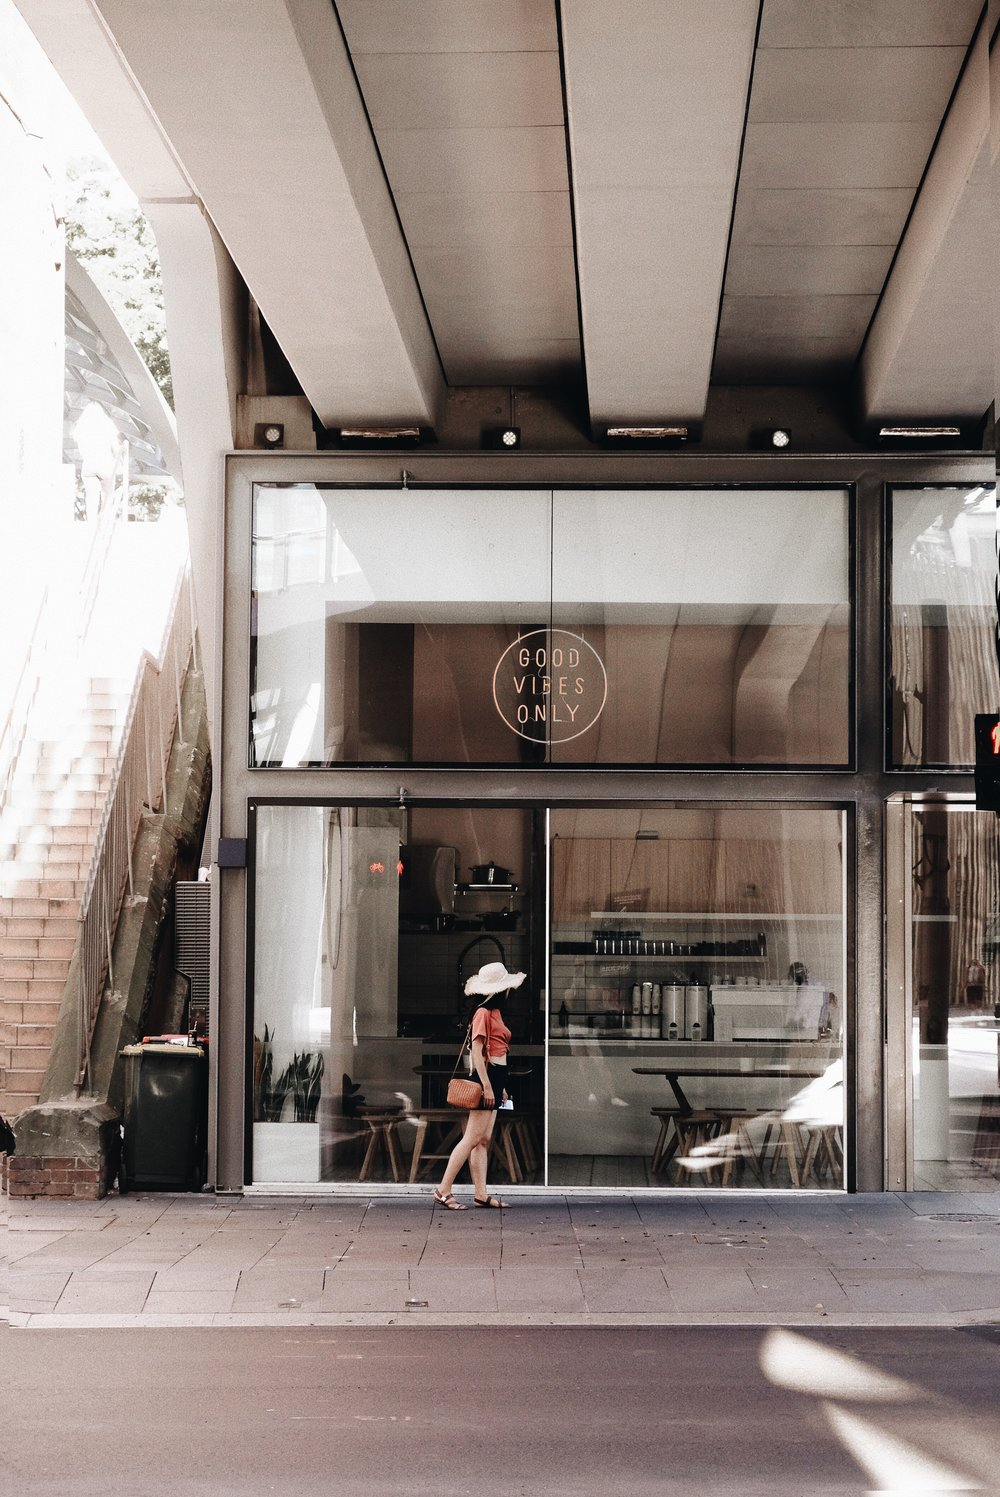 G O O D V I B E S O N L Y /  Good Vibes Only   spotted this little cafe ar the chic area in Barangaroo. Unfortunately its closed during my visit.  https://www.instagram.com/p/BsIn1hKFHlK/?utm_source=ig_web_button_share_sheet   📍26b Sussex St, Barangaroo